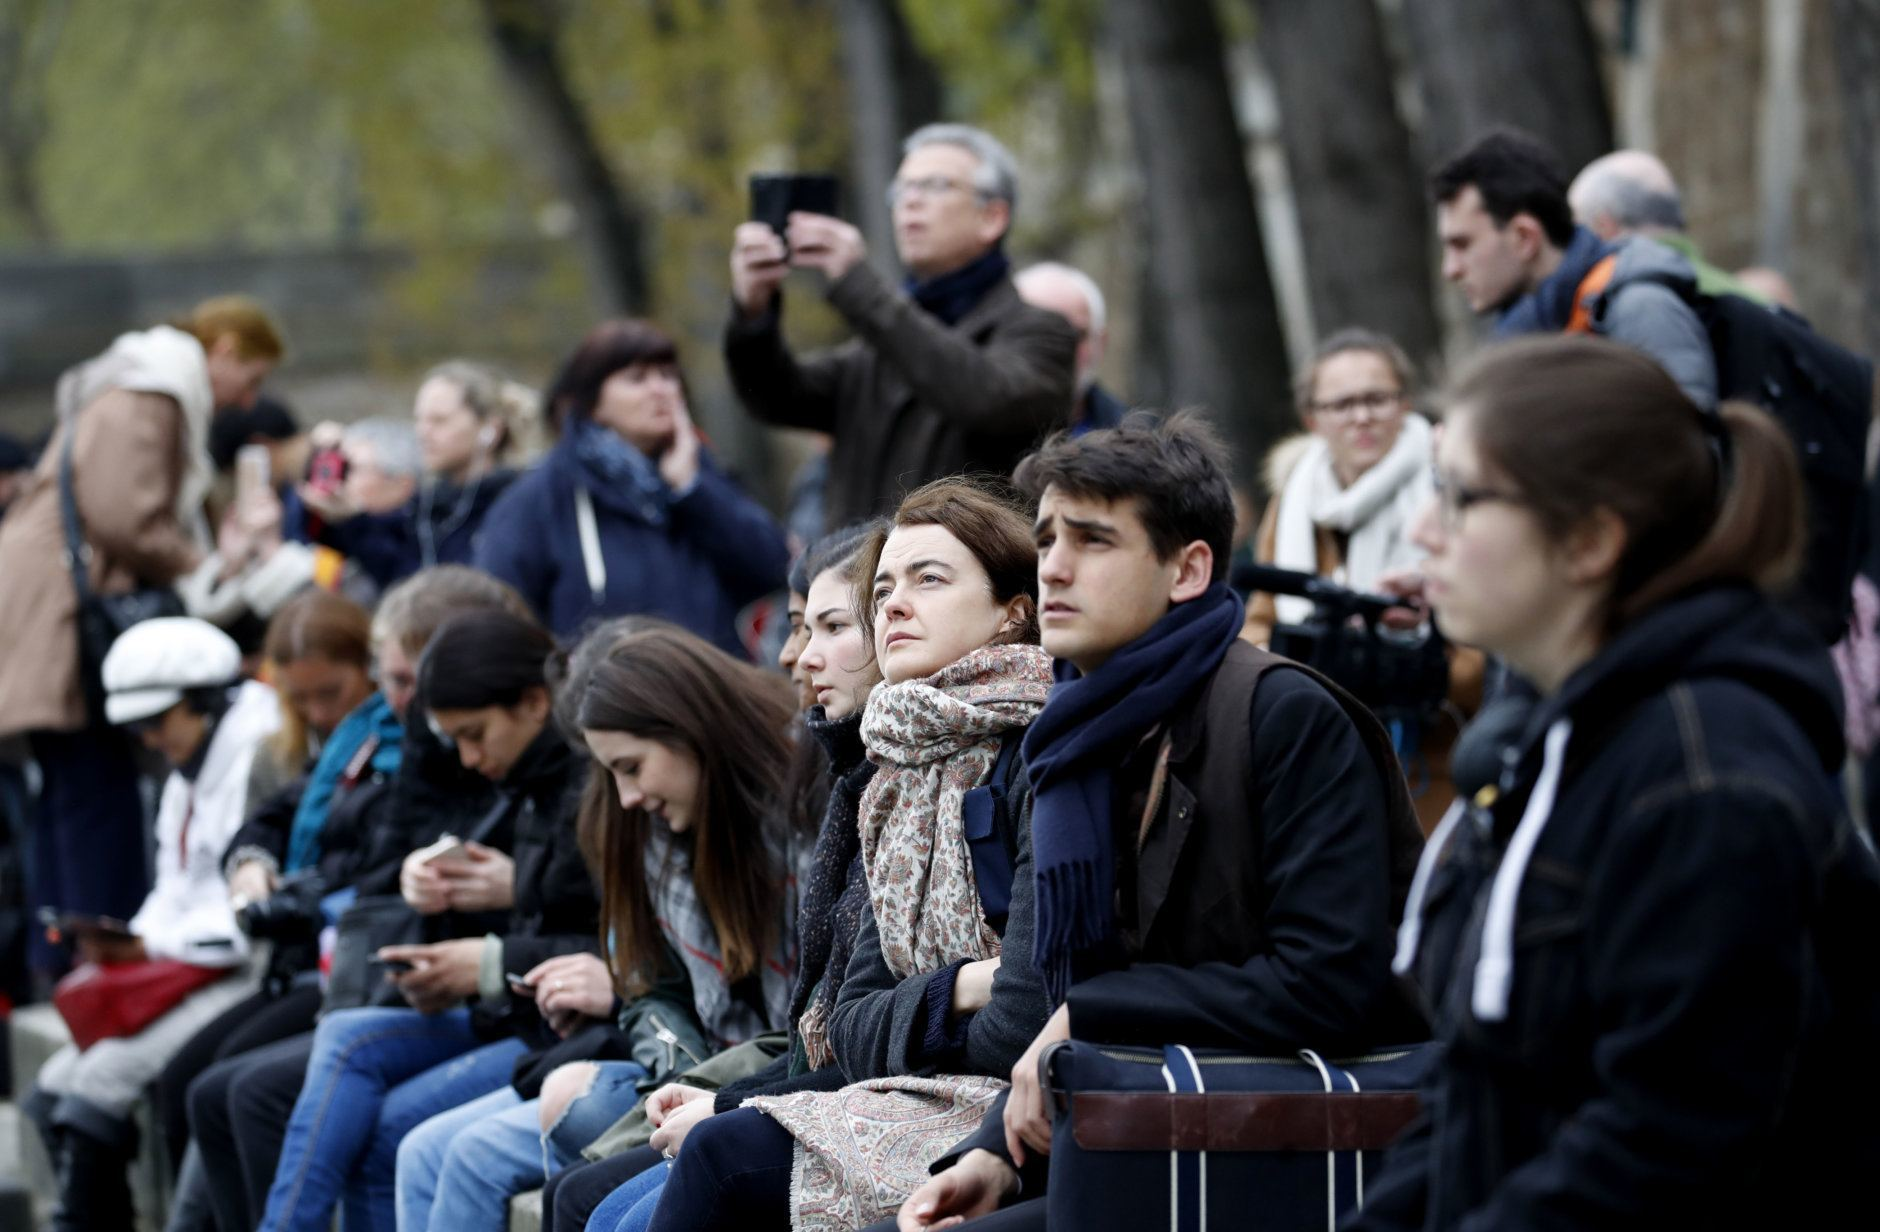 People watch and photograph the Notre Dame cathedral after the fire in Paris, Tuesday, April 16, 2019. Experts are assessing the blackened shell of Paris' iconic Notre Dame cathedral to establish next steps to save what remains after a devastating fire destroyed much of the almost 900-year-old building. With the fire that broke out Monday evening and quickly consumed the cathedral now under control, attention is turning to ensuring the structural integrity of the remaining building. (AP Photo/Christophe Ena)